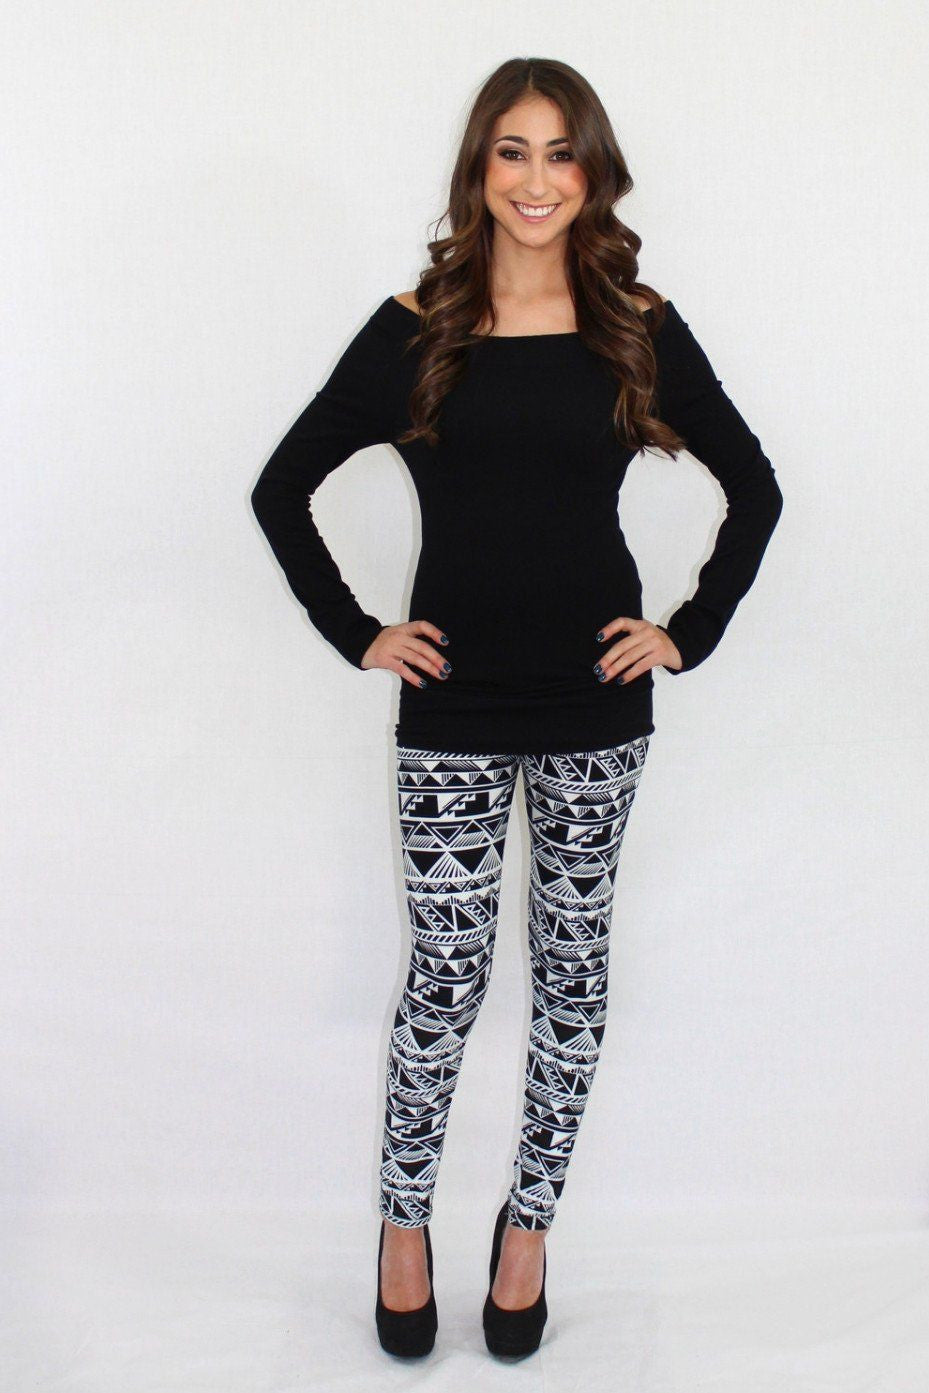 Pound the Alarm Aztec Leggings - The Laguna Room